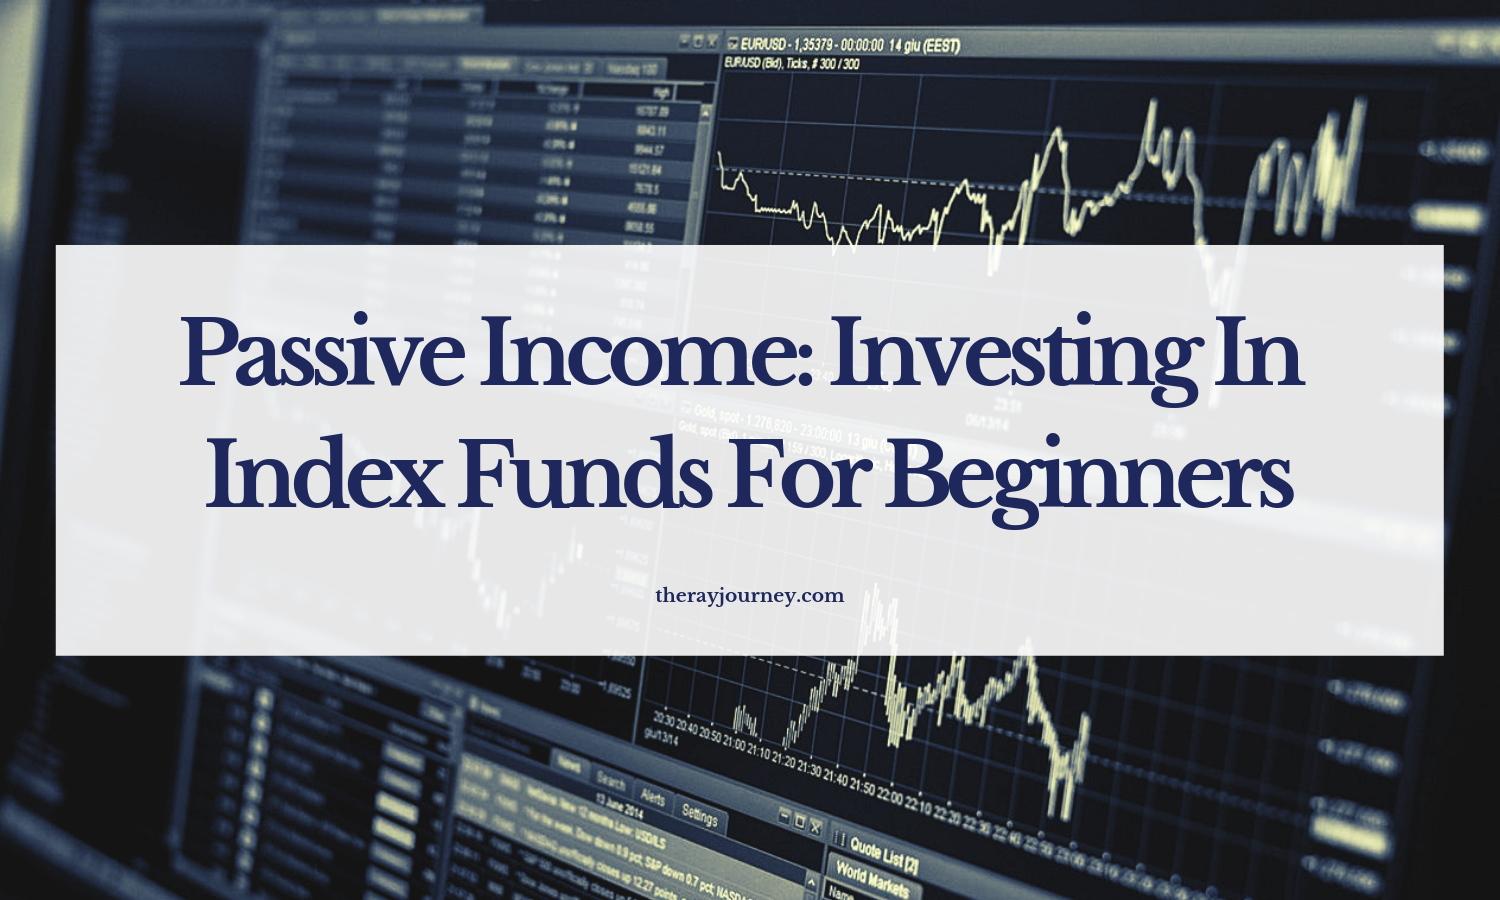 Passive Income: Investing In Index Funds For Beginners